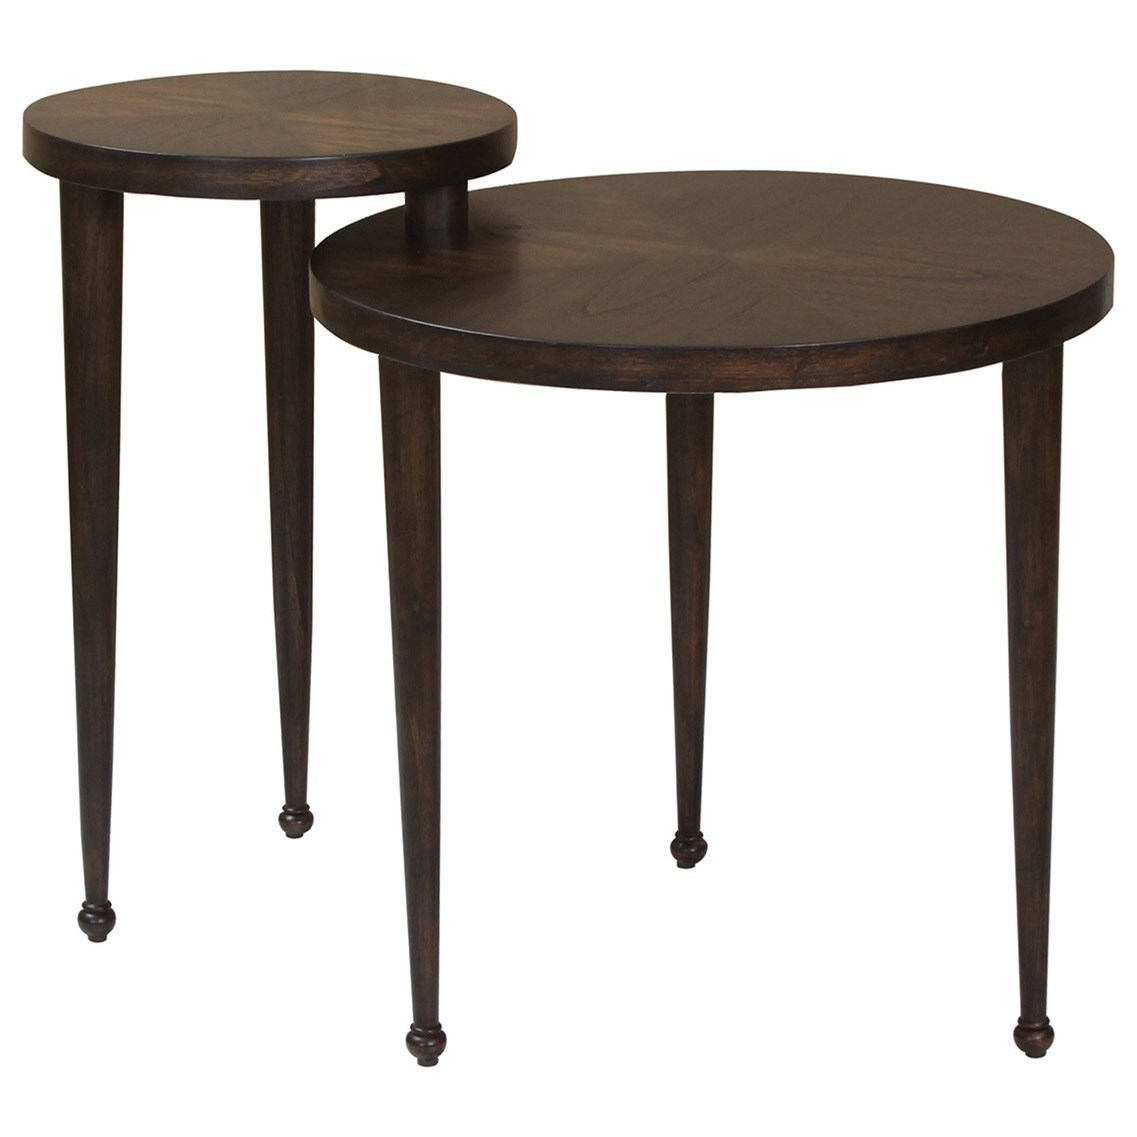 Nesting furniture Outdoor Coaster Nesting Tables Round Nesting Table With Narrow Legs Miskelly Furniture Coaster Nesting Tables Round Nesting Table With Narrow Legs